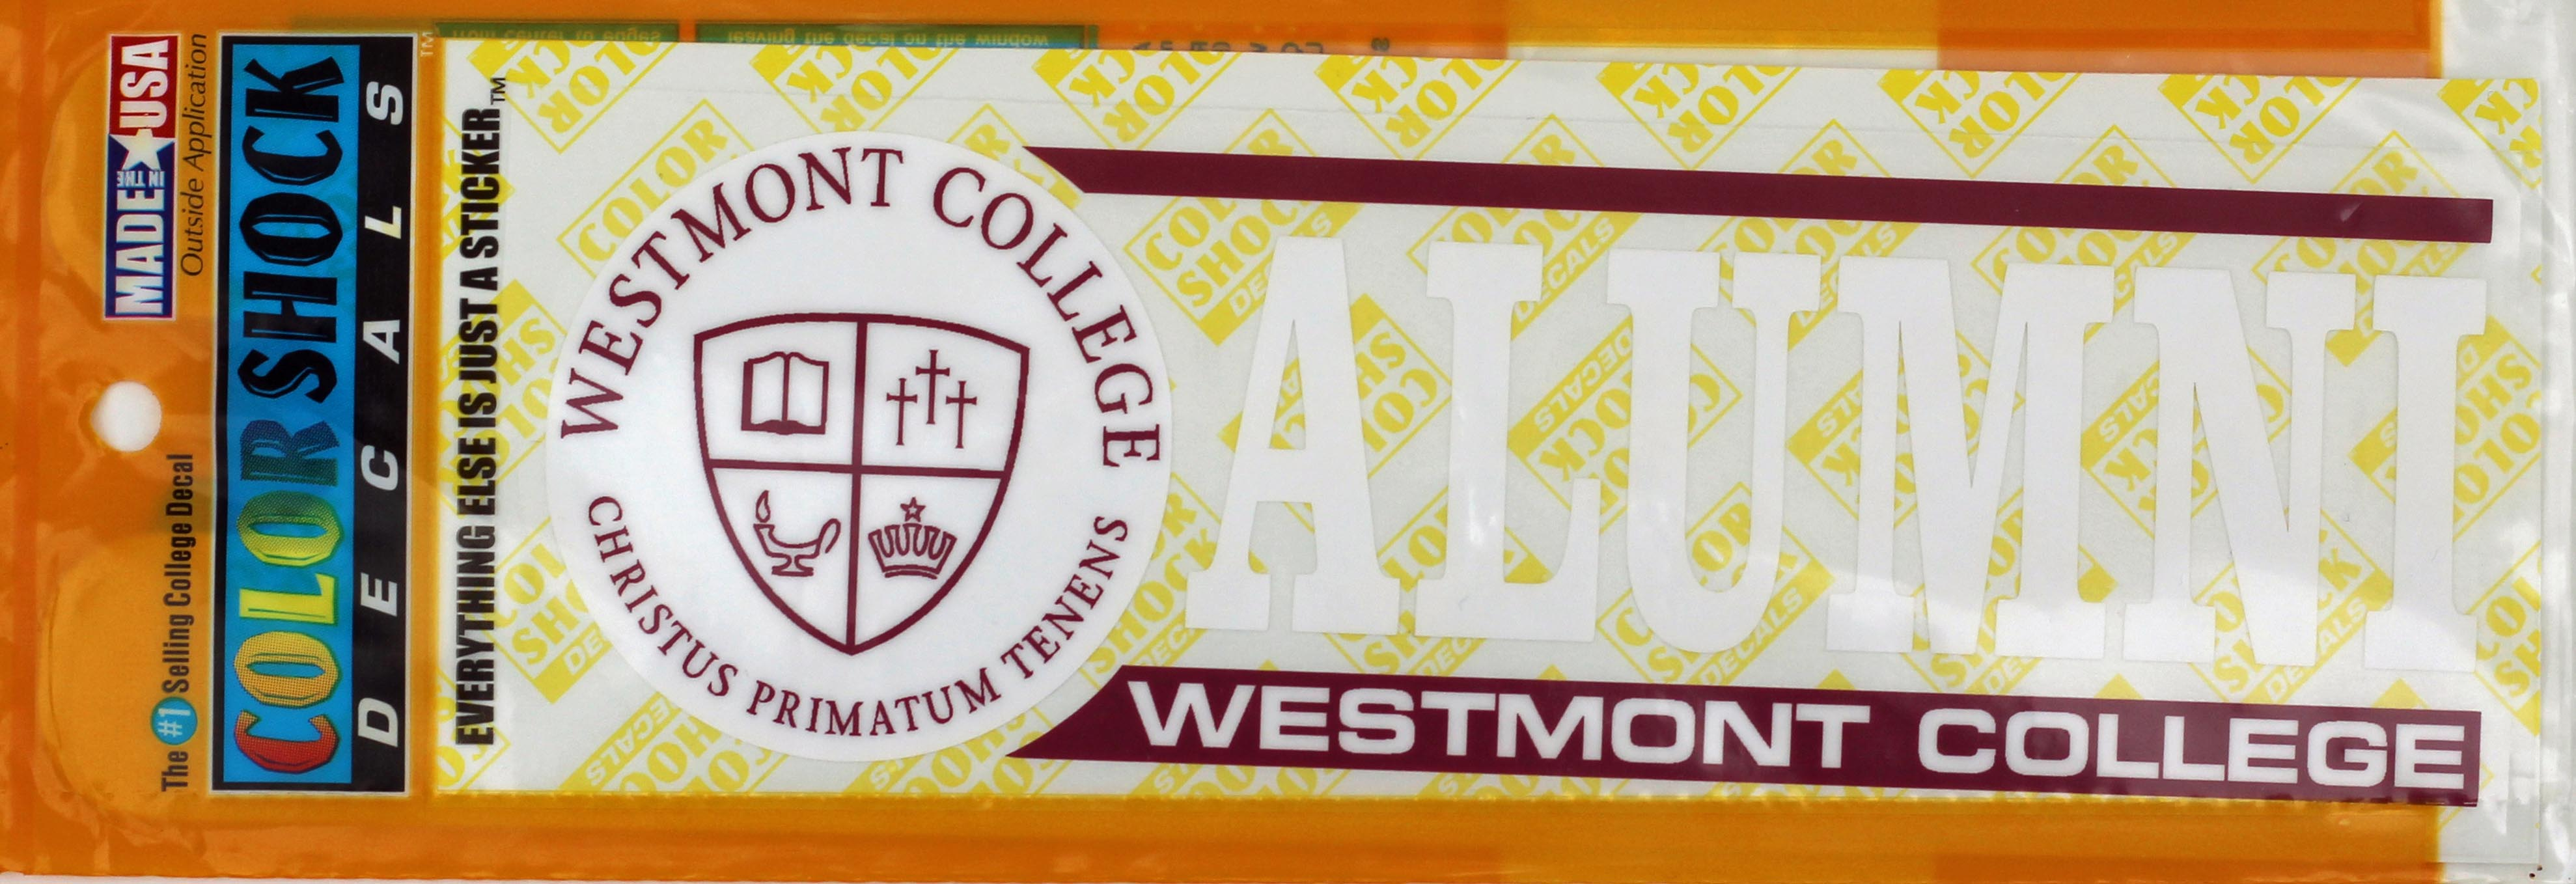 Image for the Color Shock Westmont Alumni Seal Decal product